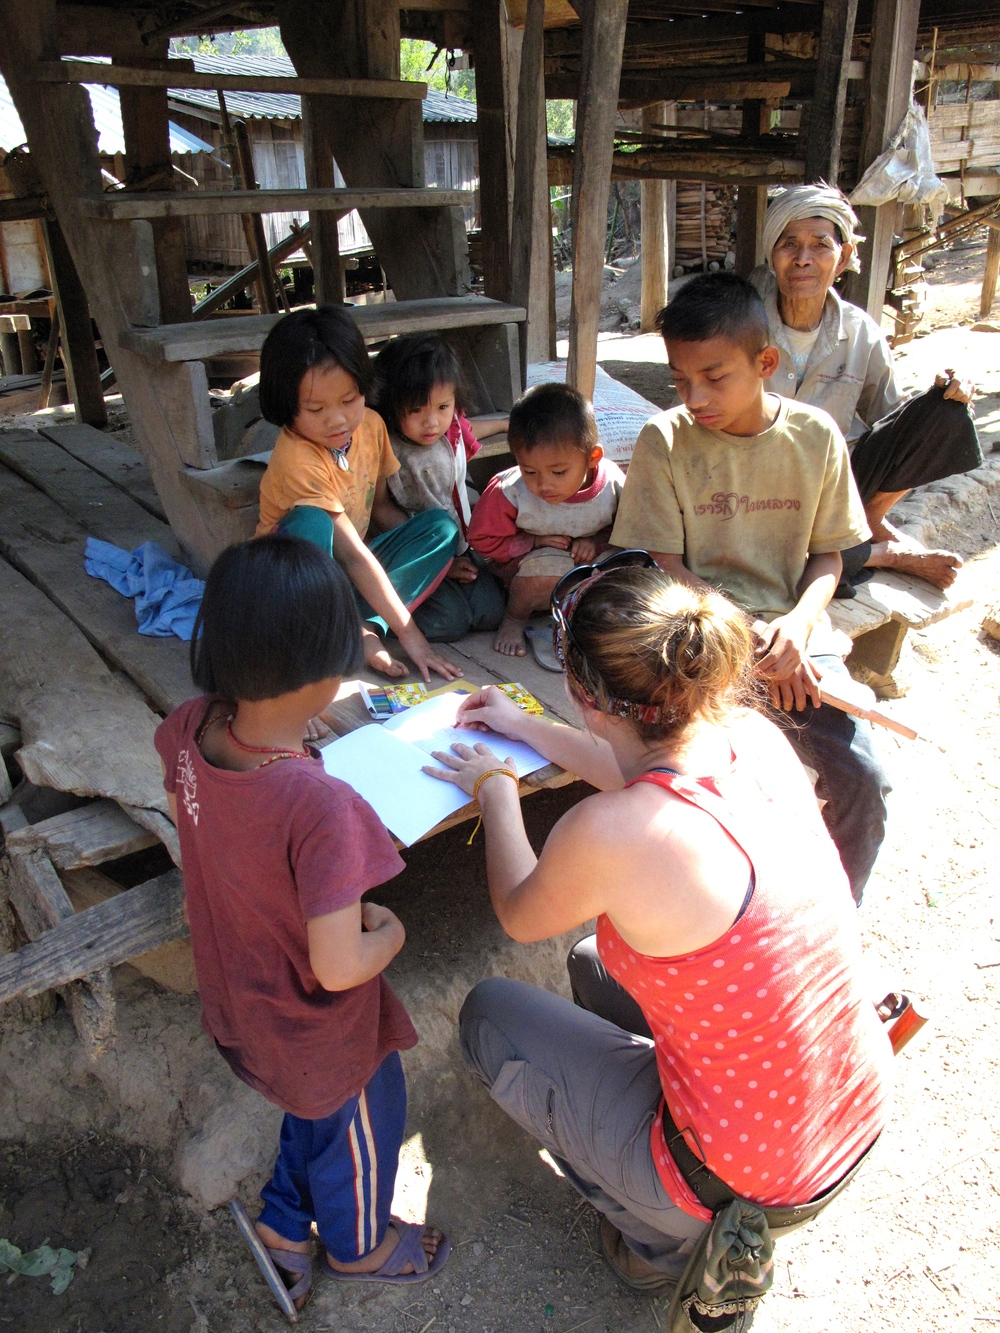 Colouring in with kids at one of the remote hill villages north of Chiang Mai.